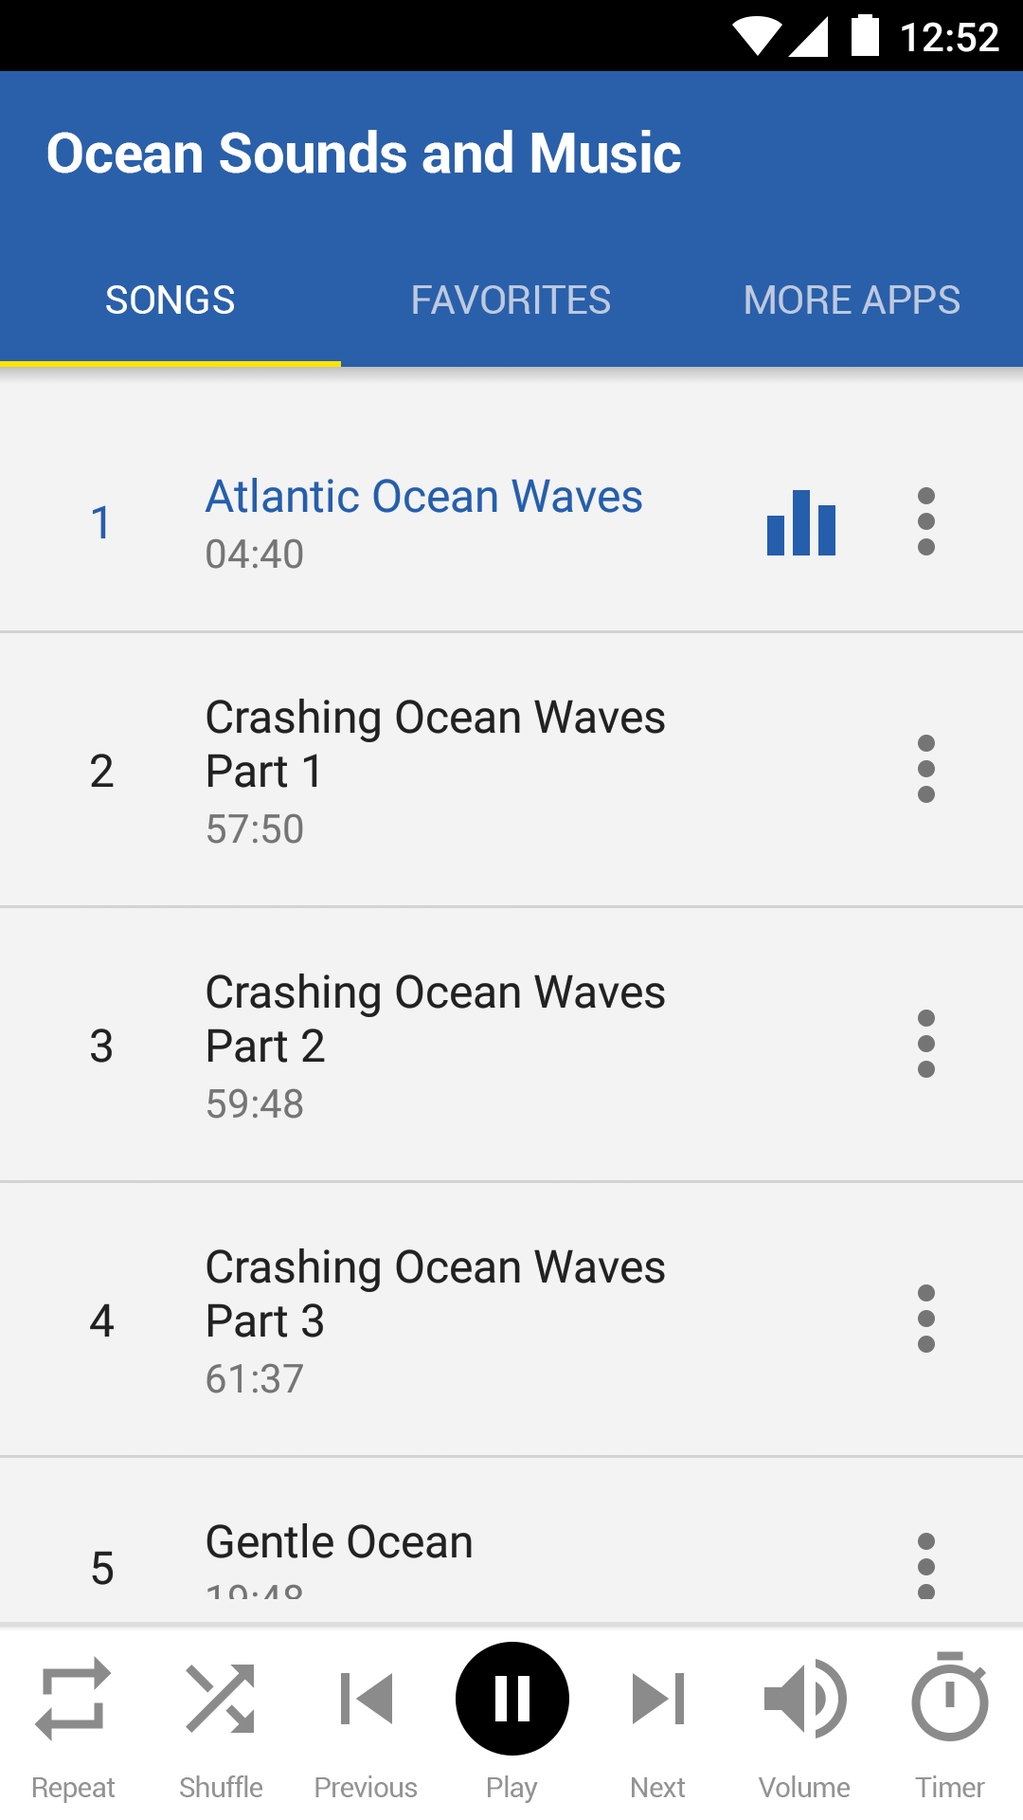 Ocean Sounds and Music Screenshot 1